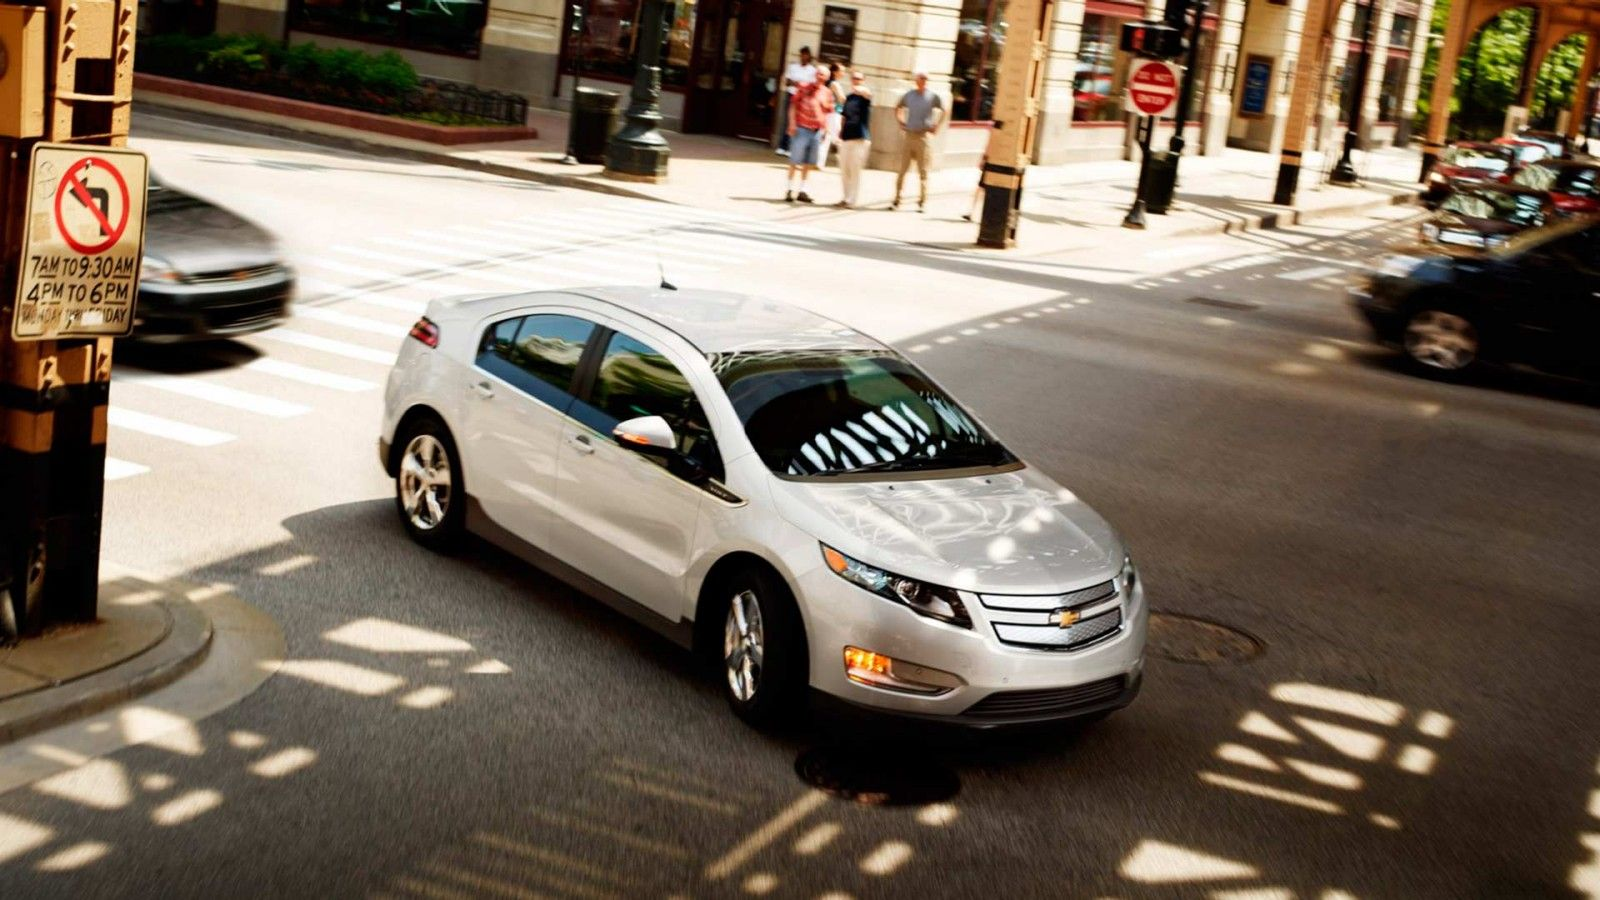 2014 Chevy Volt Electric Car Range 380 Miles 38 Electric Price